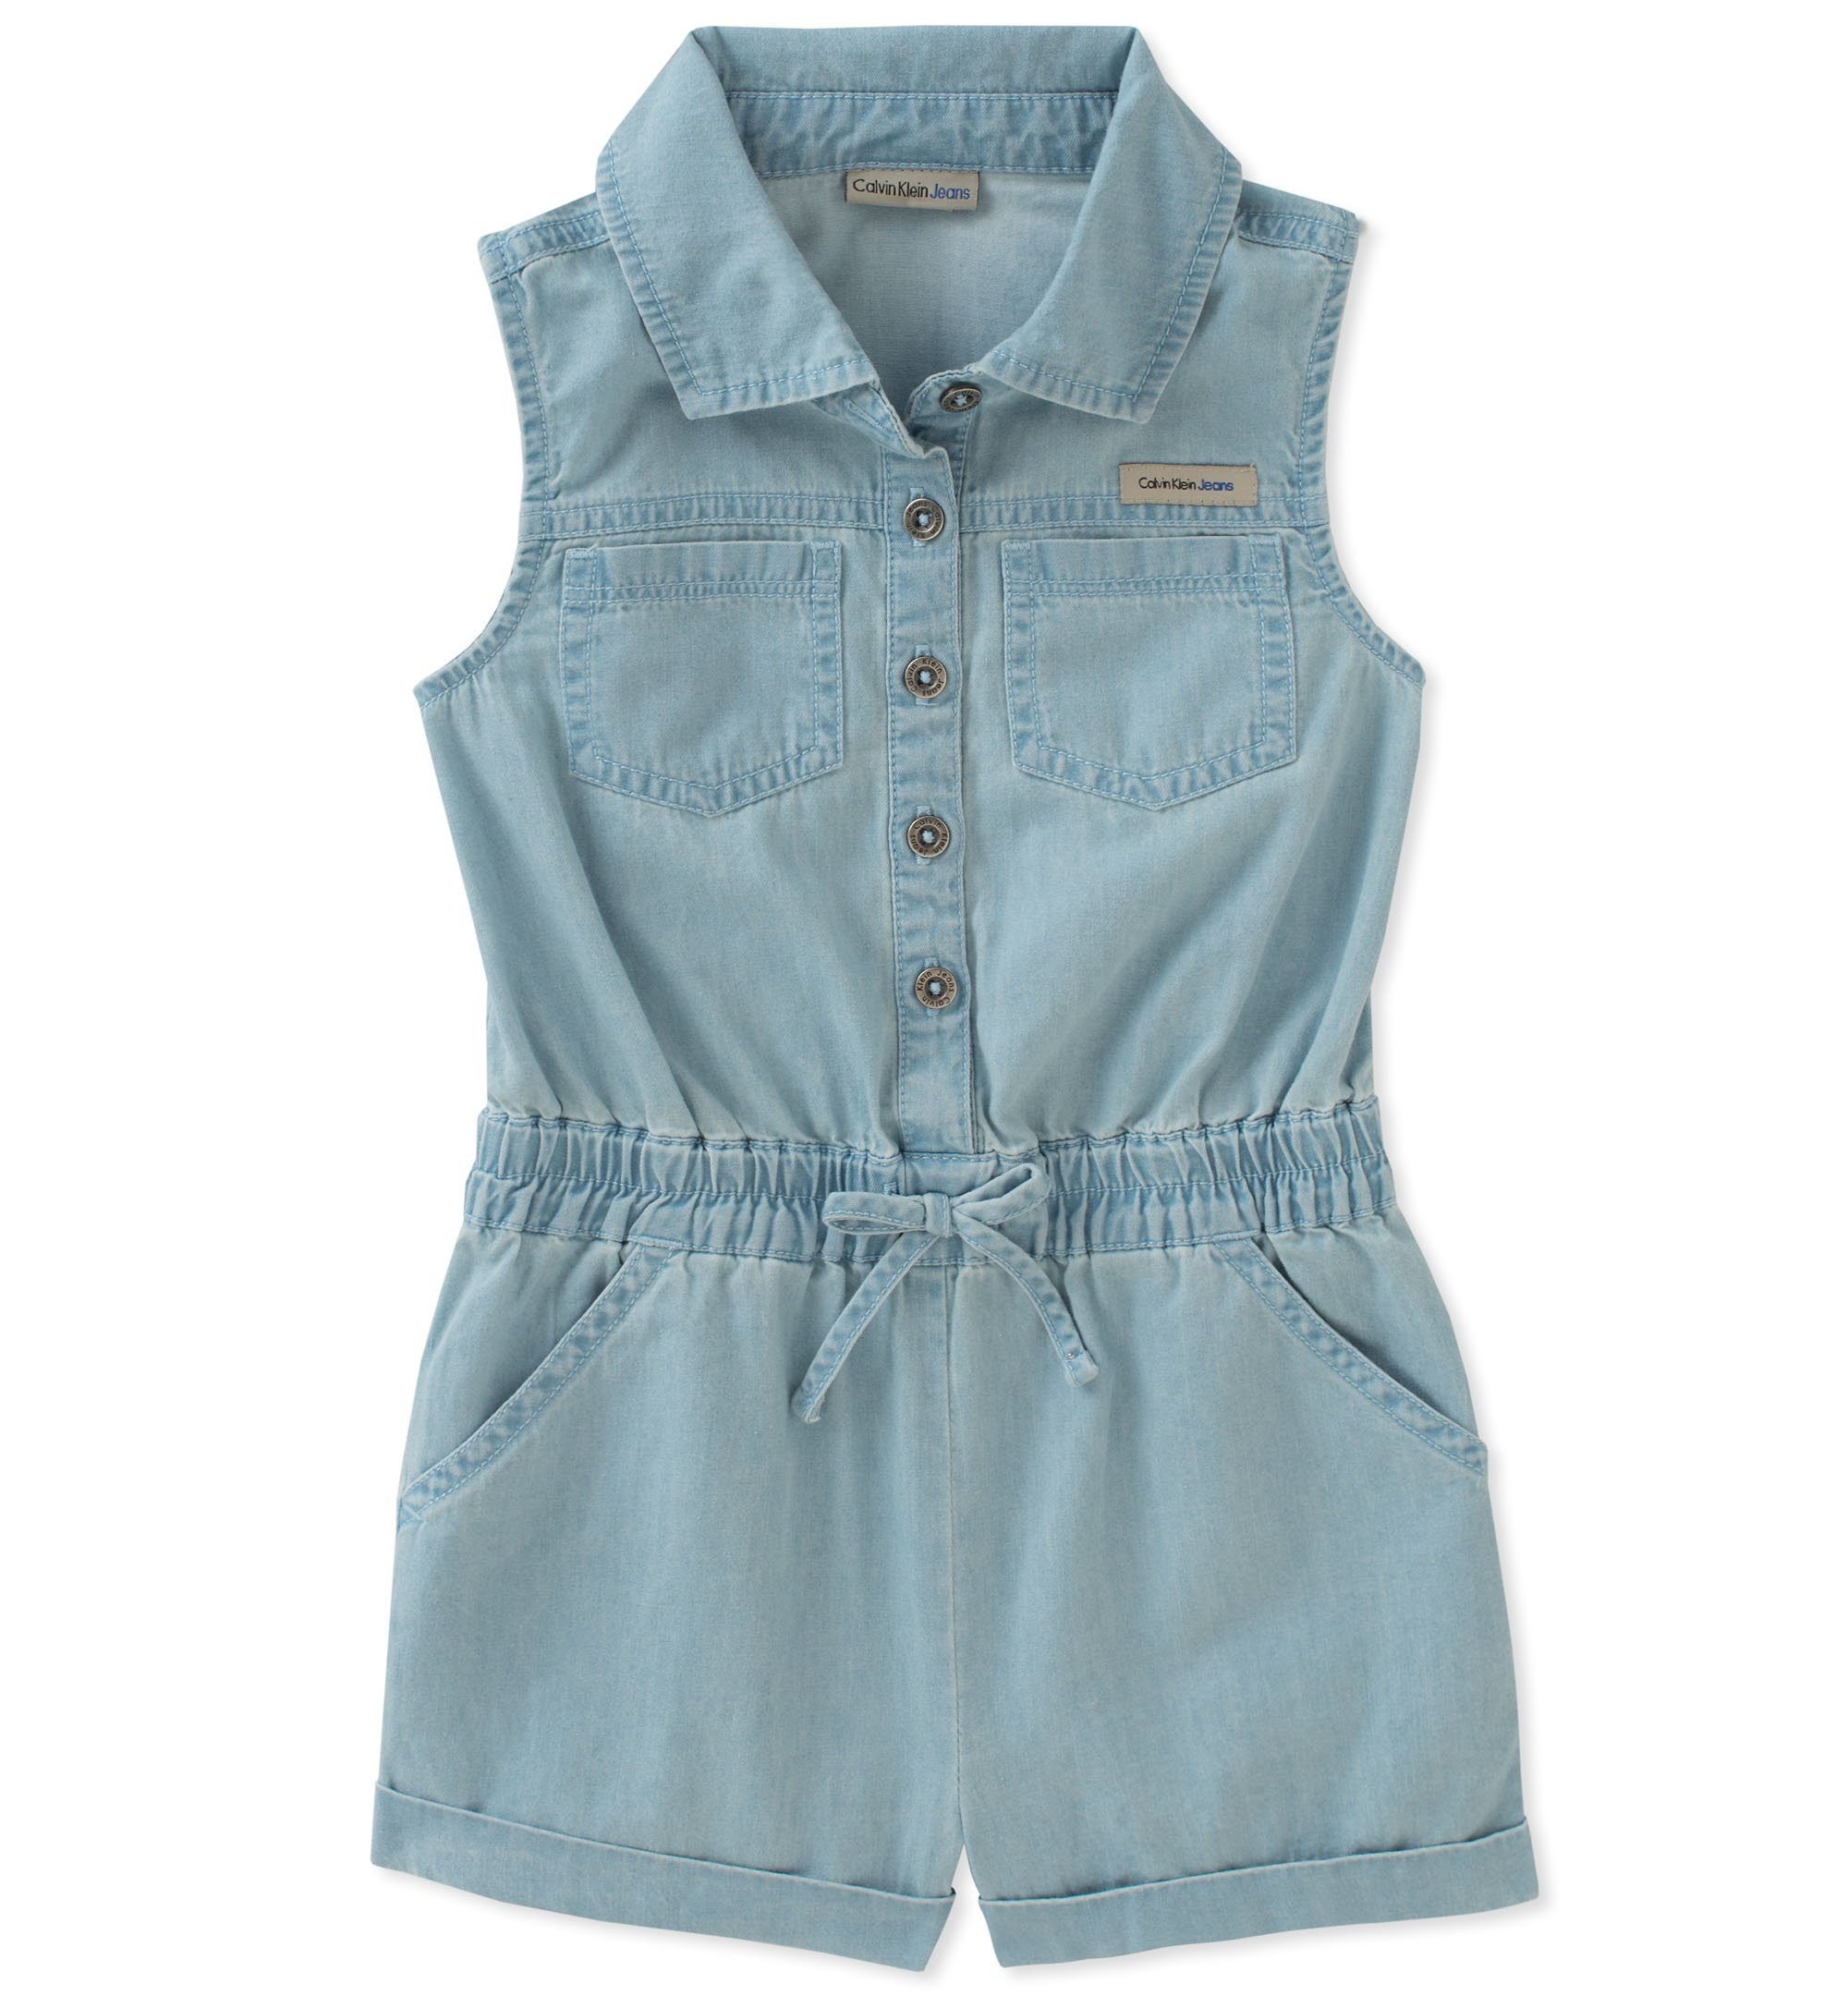 Calvin Klein Little Girls' Romper, Light Wash Blue, 4